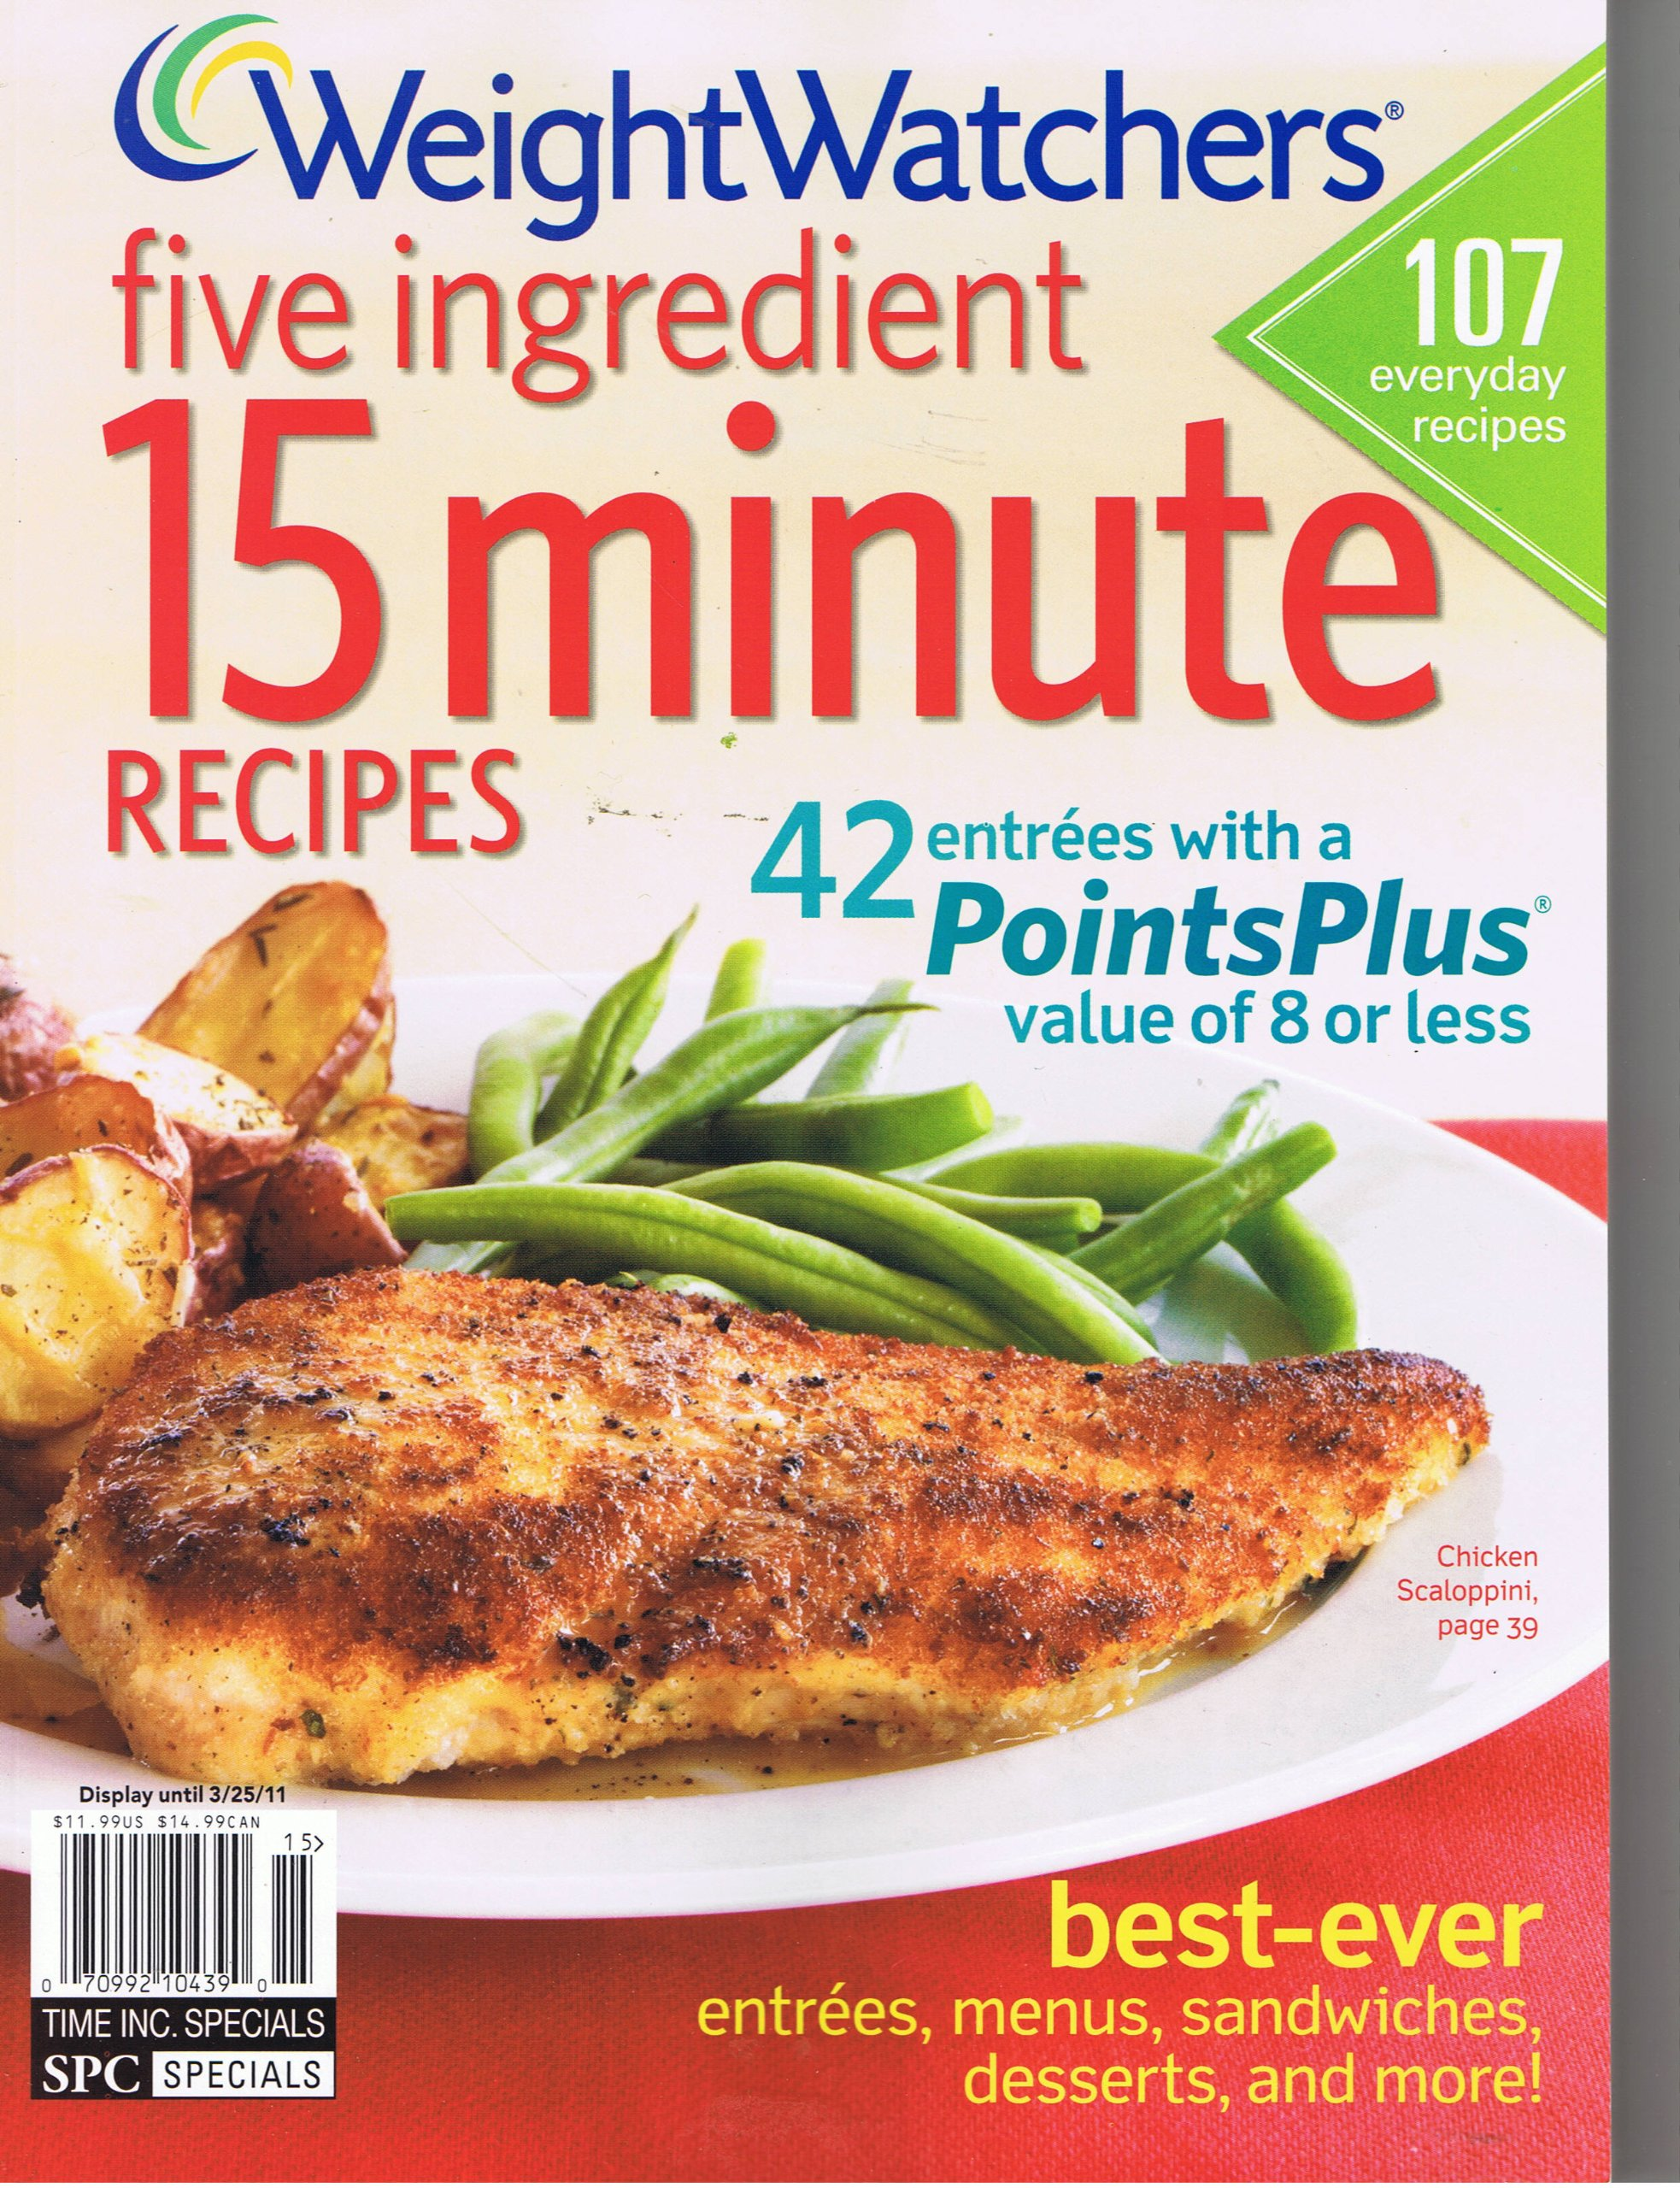 Weight Watchers Five Ingredient 15 Minute Recipes (42 entrees with Points Plus value of 8 or less, 107 everday recipes) pdf